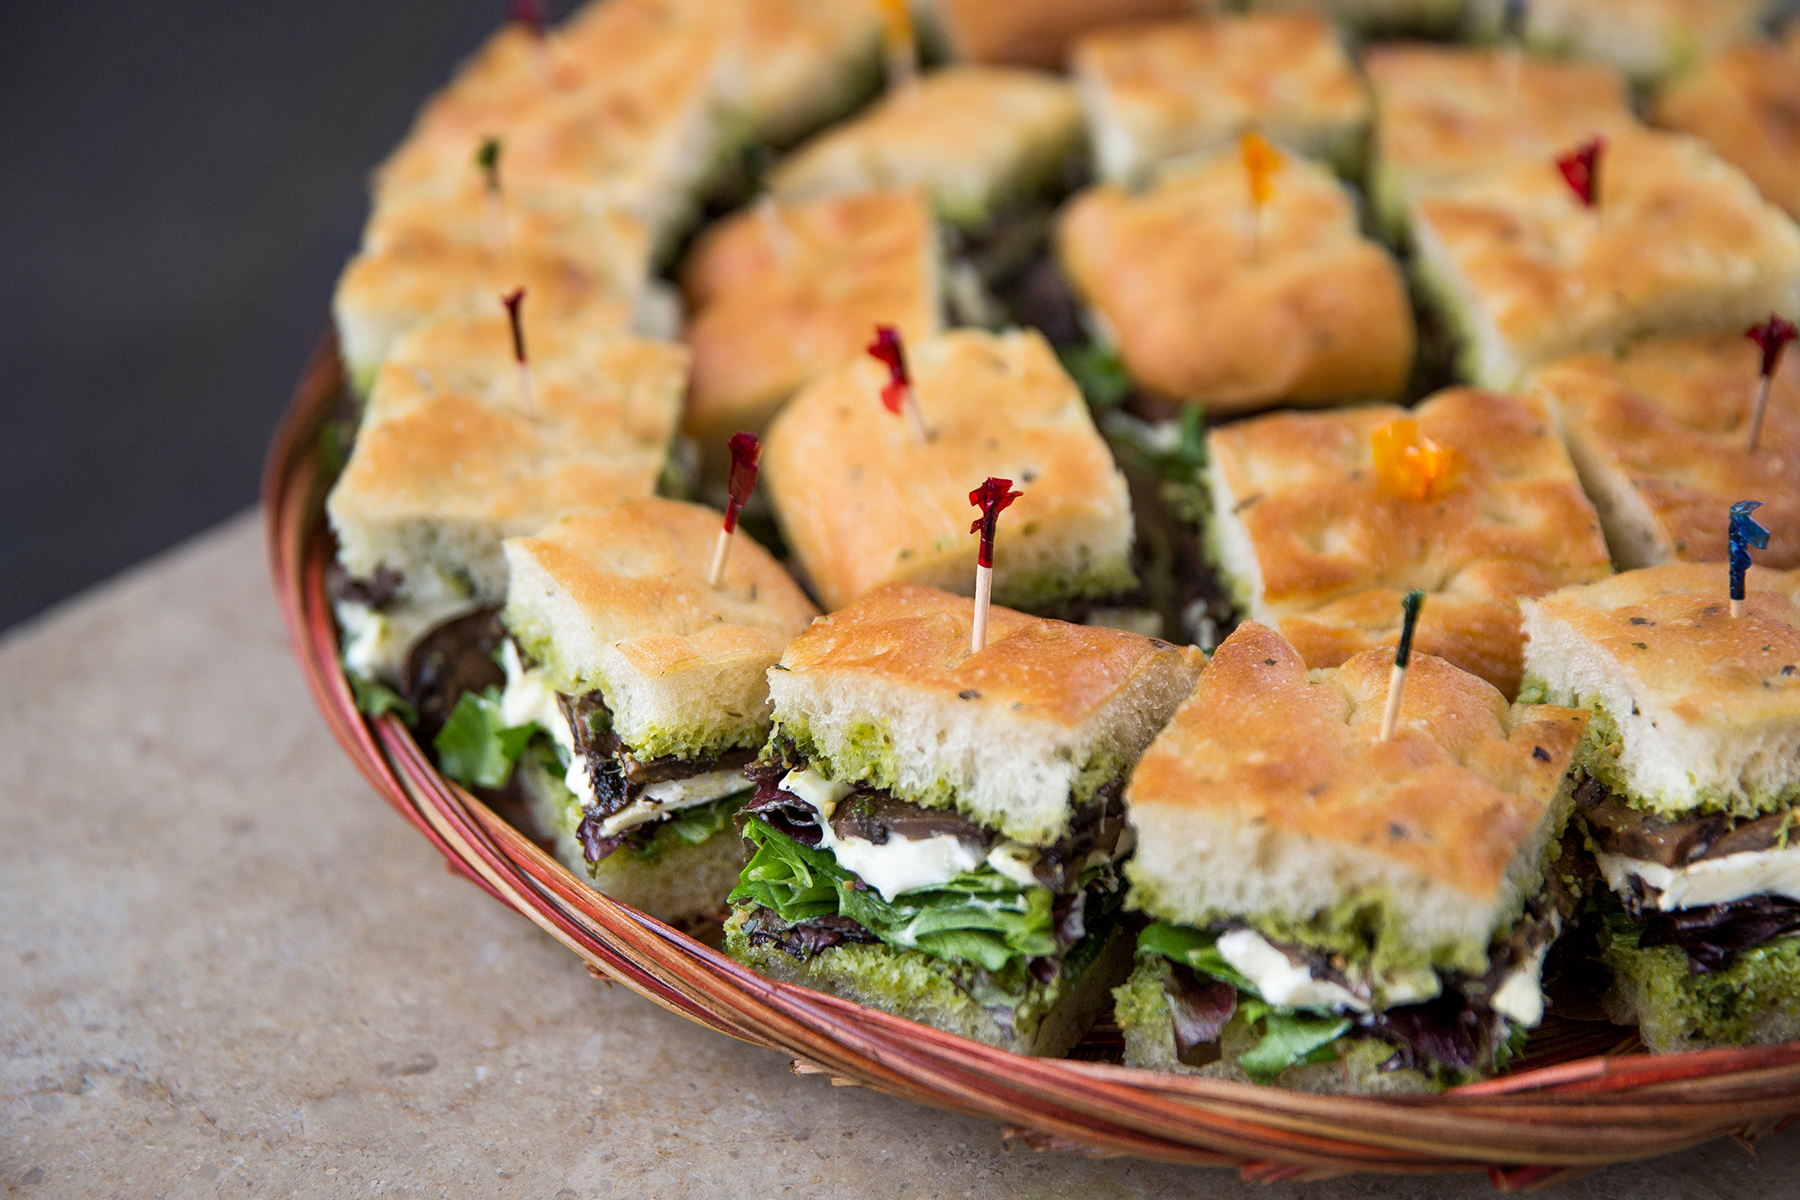 Sandwich platters market hall caterers focaccia sandwich bites platter brie crimini mushrooms baby spinach thecheapjerseys Choice Image